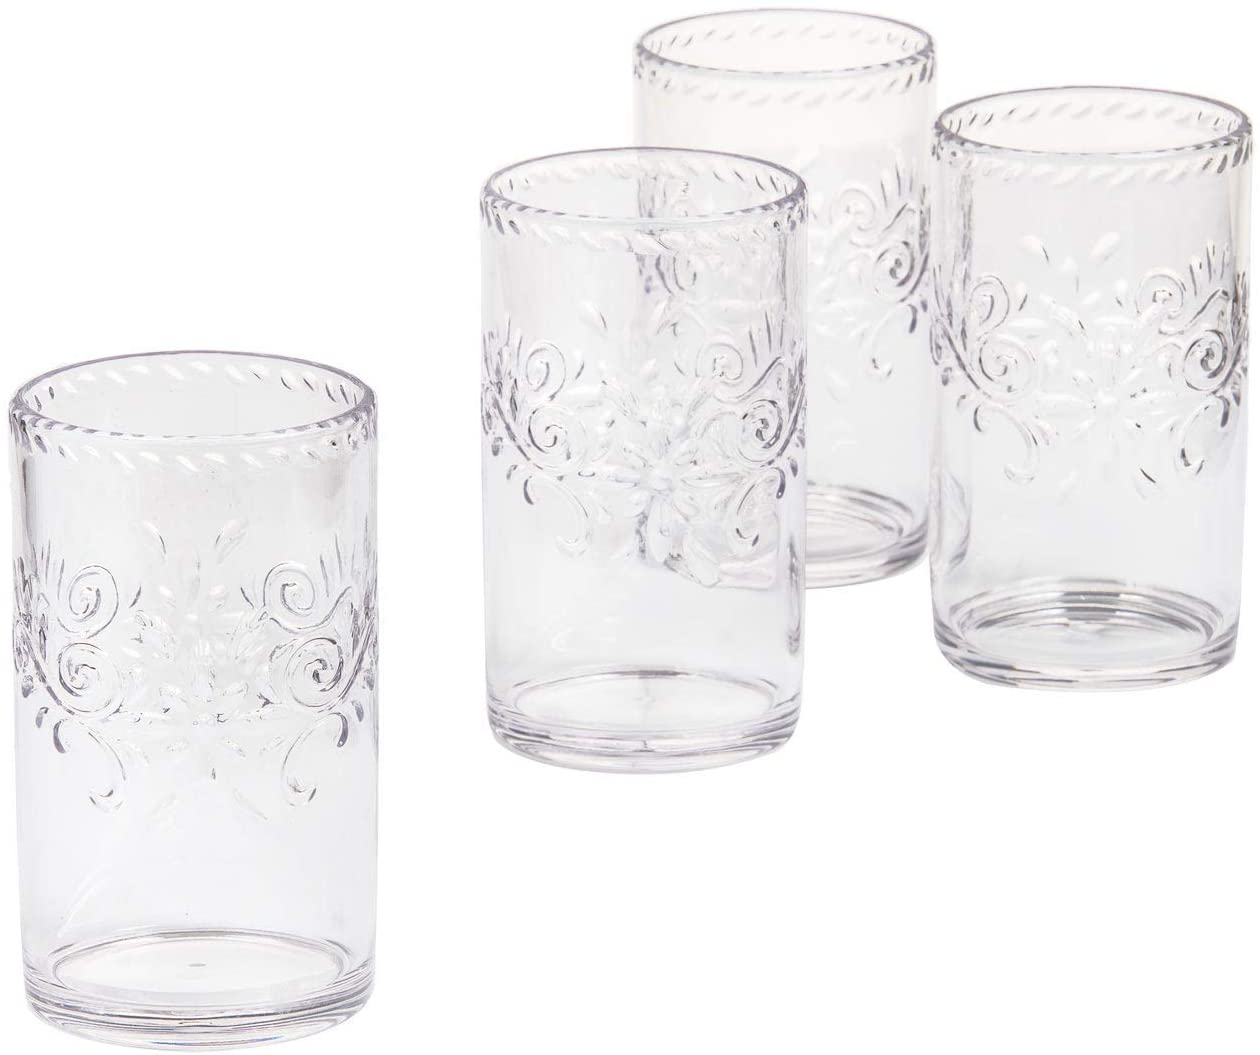 Darice 30061014 Acrylic Cooler Drinkware, Set of 4, Clear